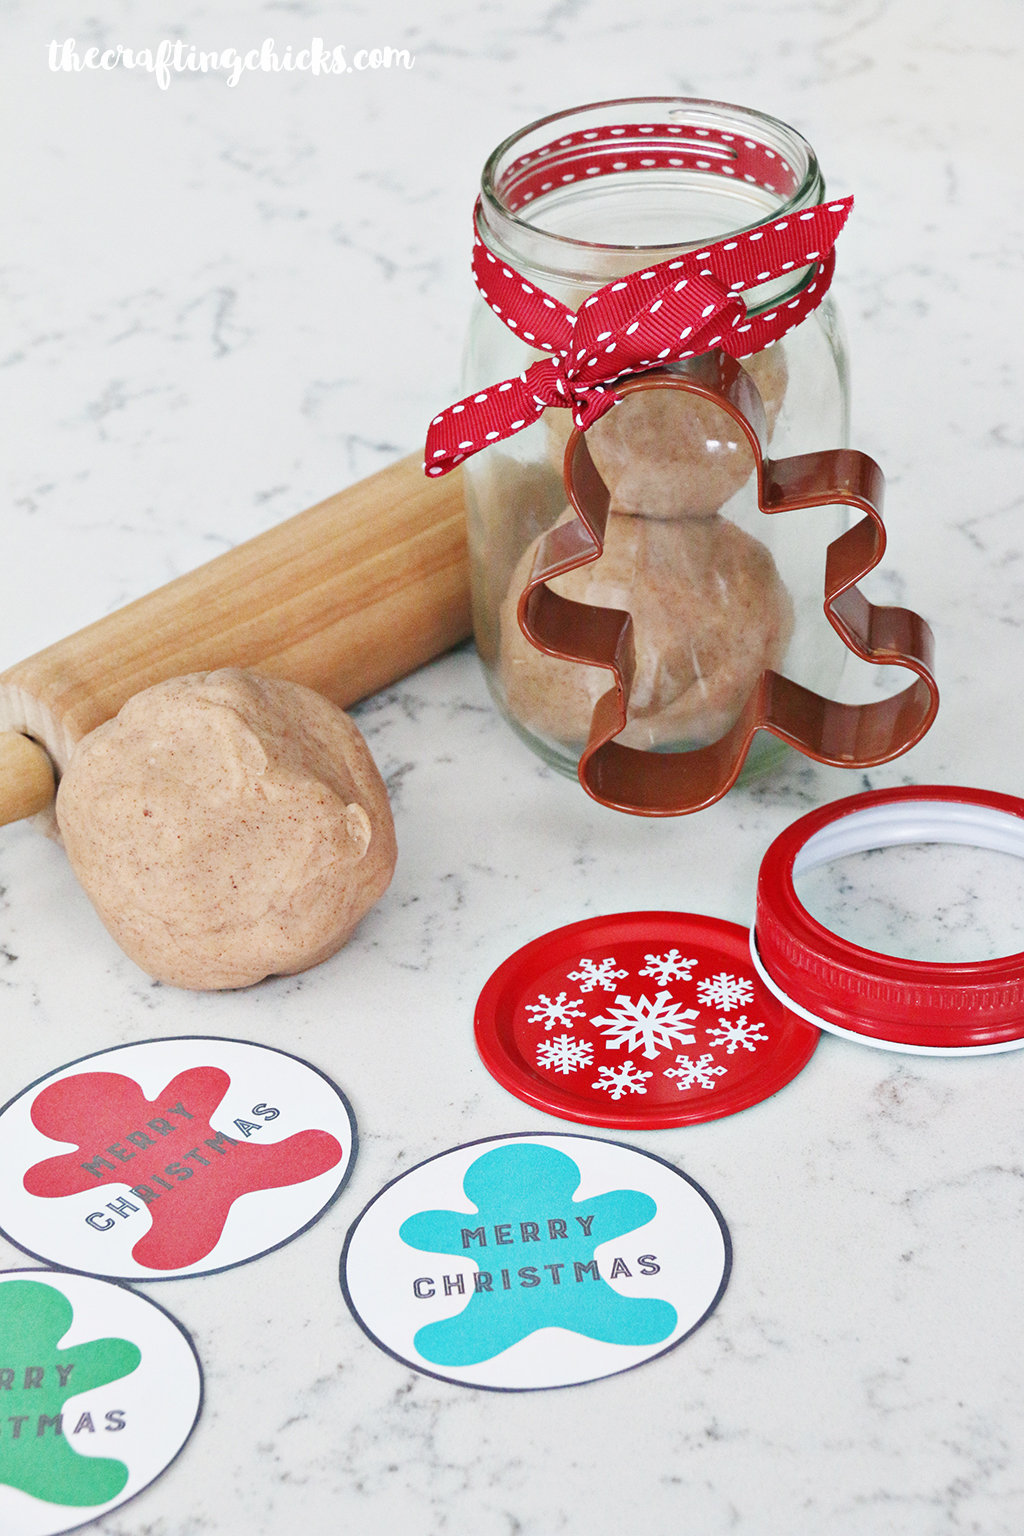 Gingerbread Gift Tag Printable - A simple Christmas neighbor gift idea